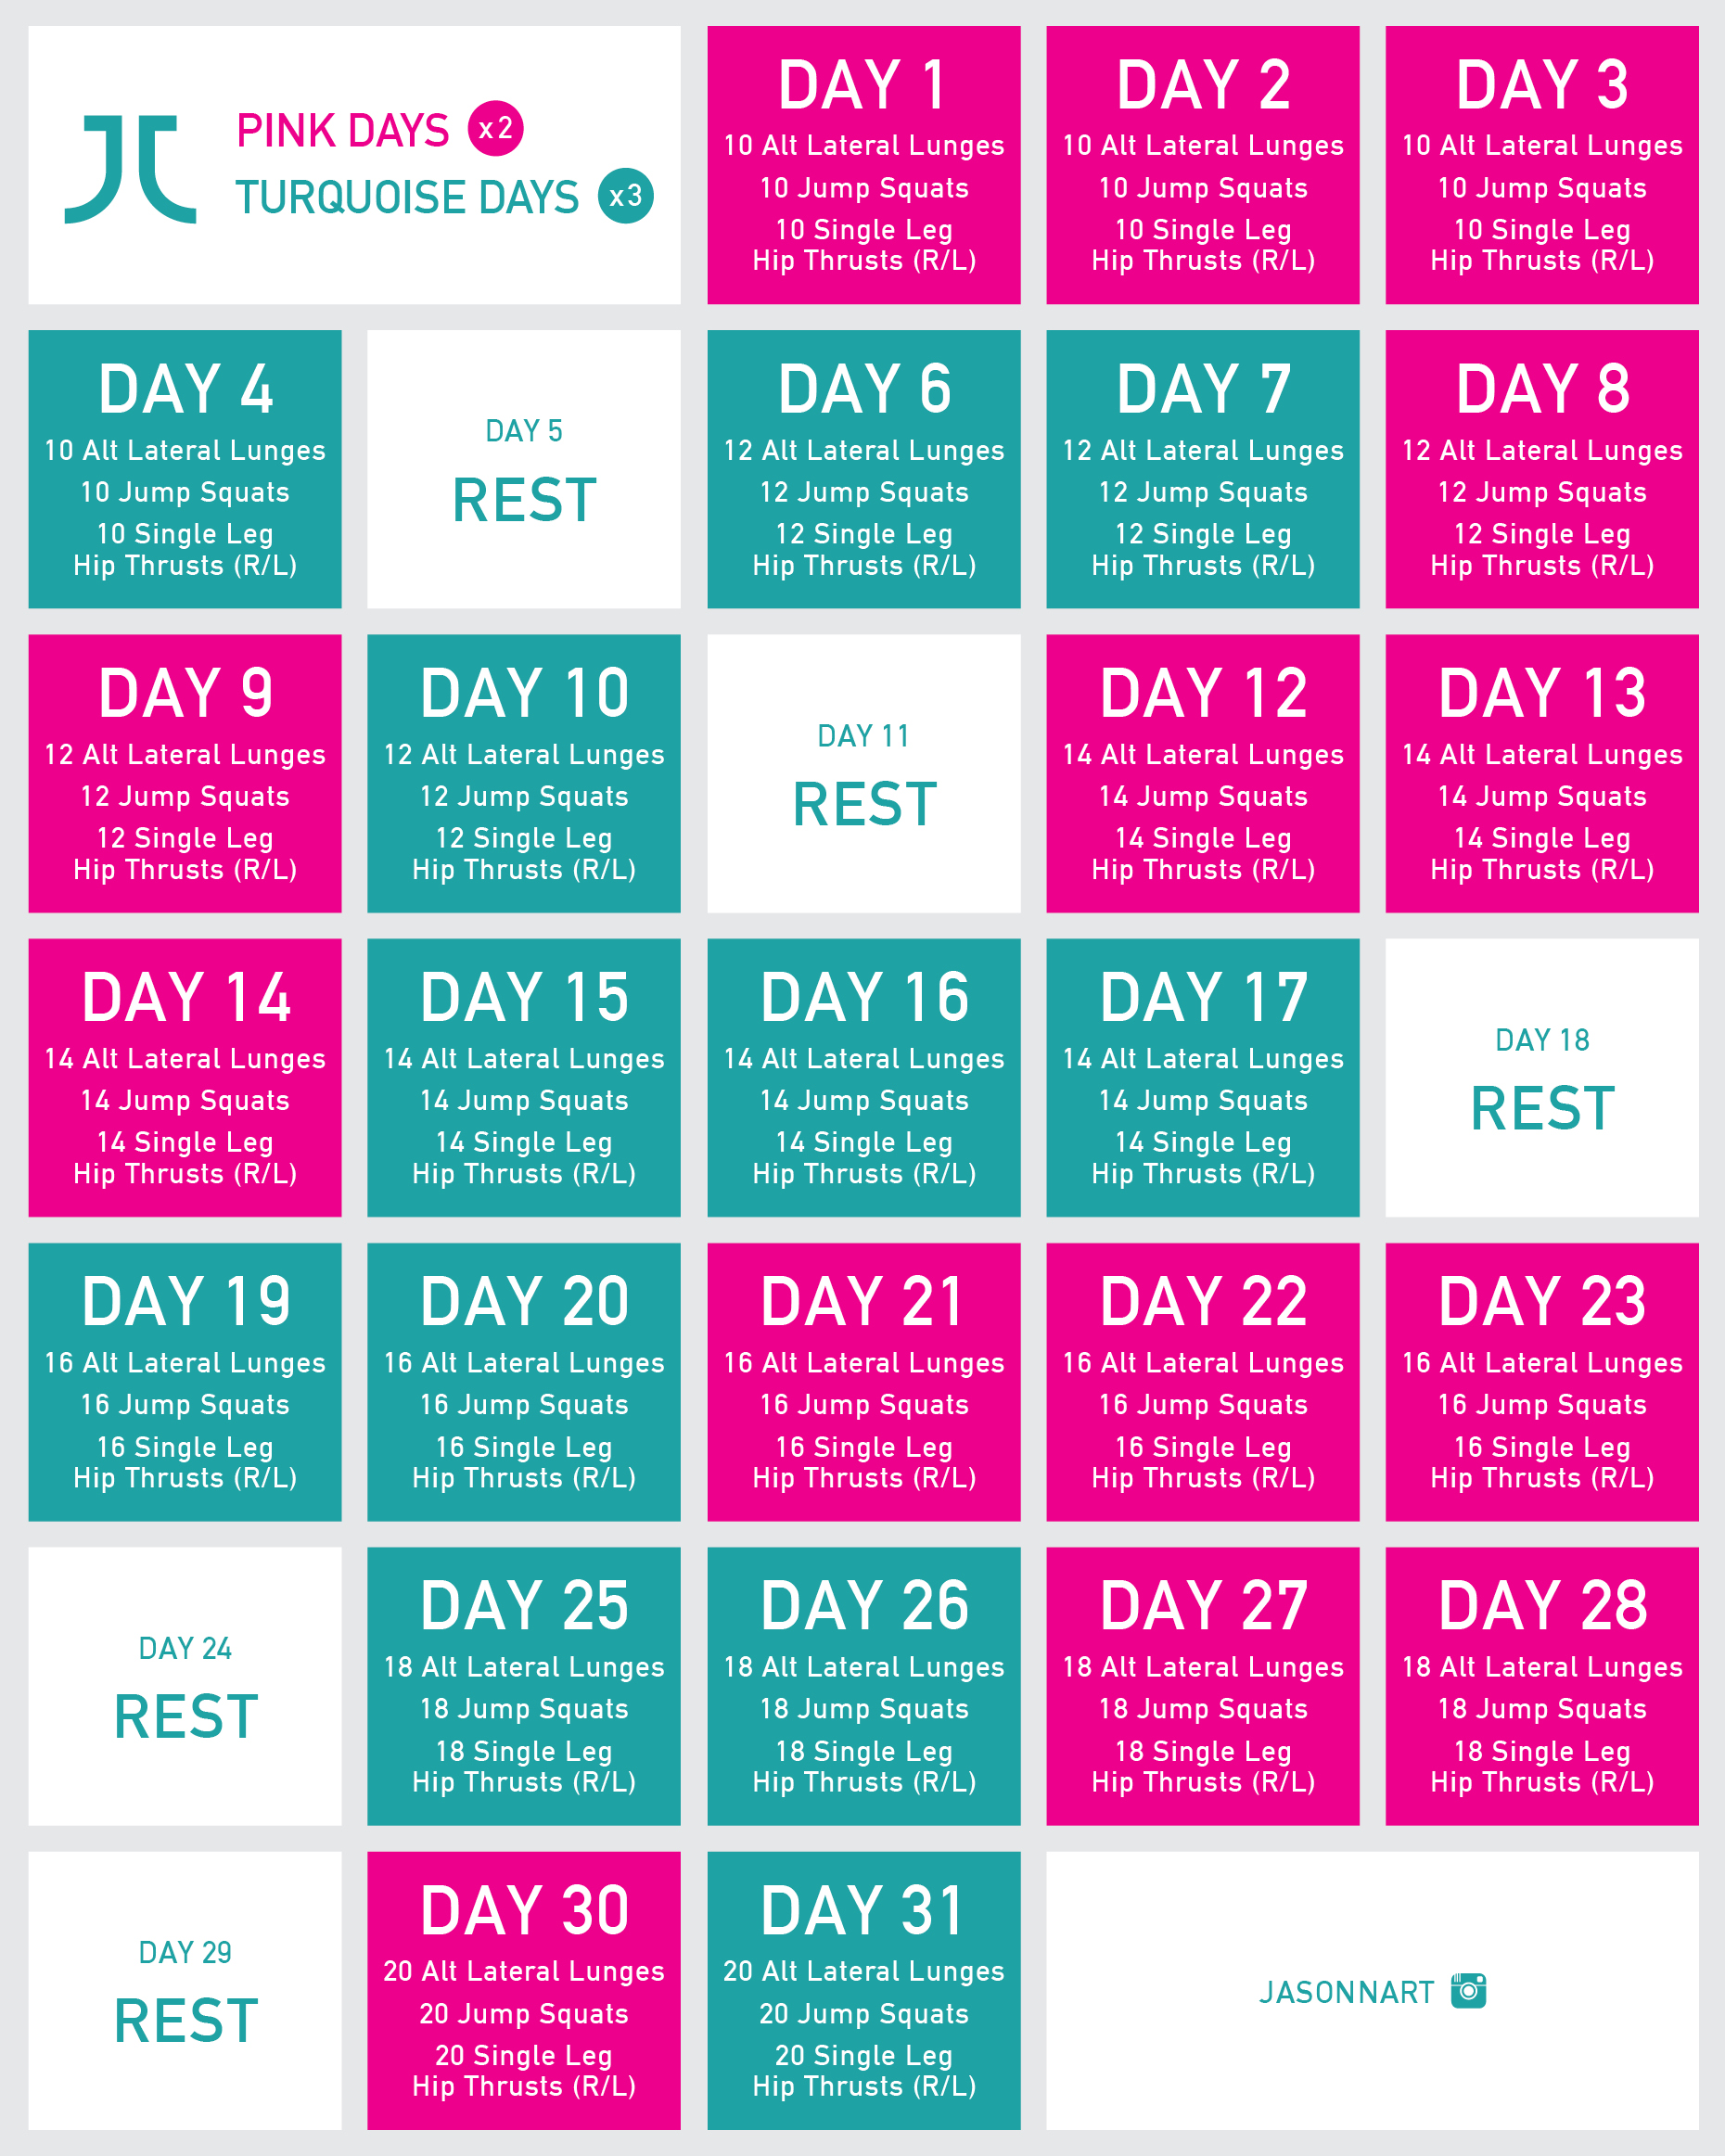 30 Day Lower Body Challenge -Elite Daily Image by: Lesley Hartman